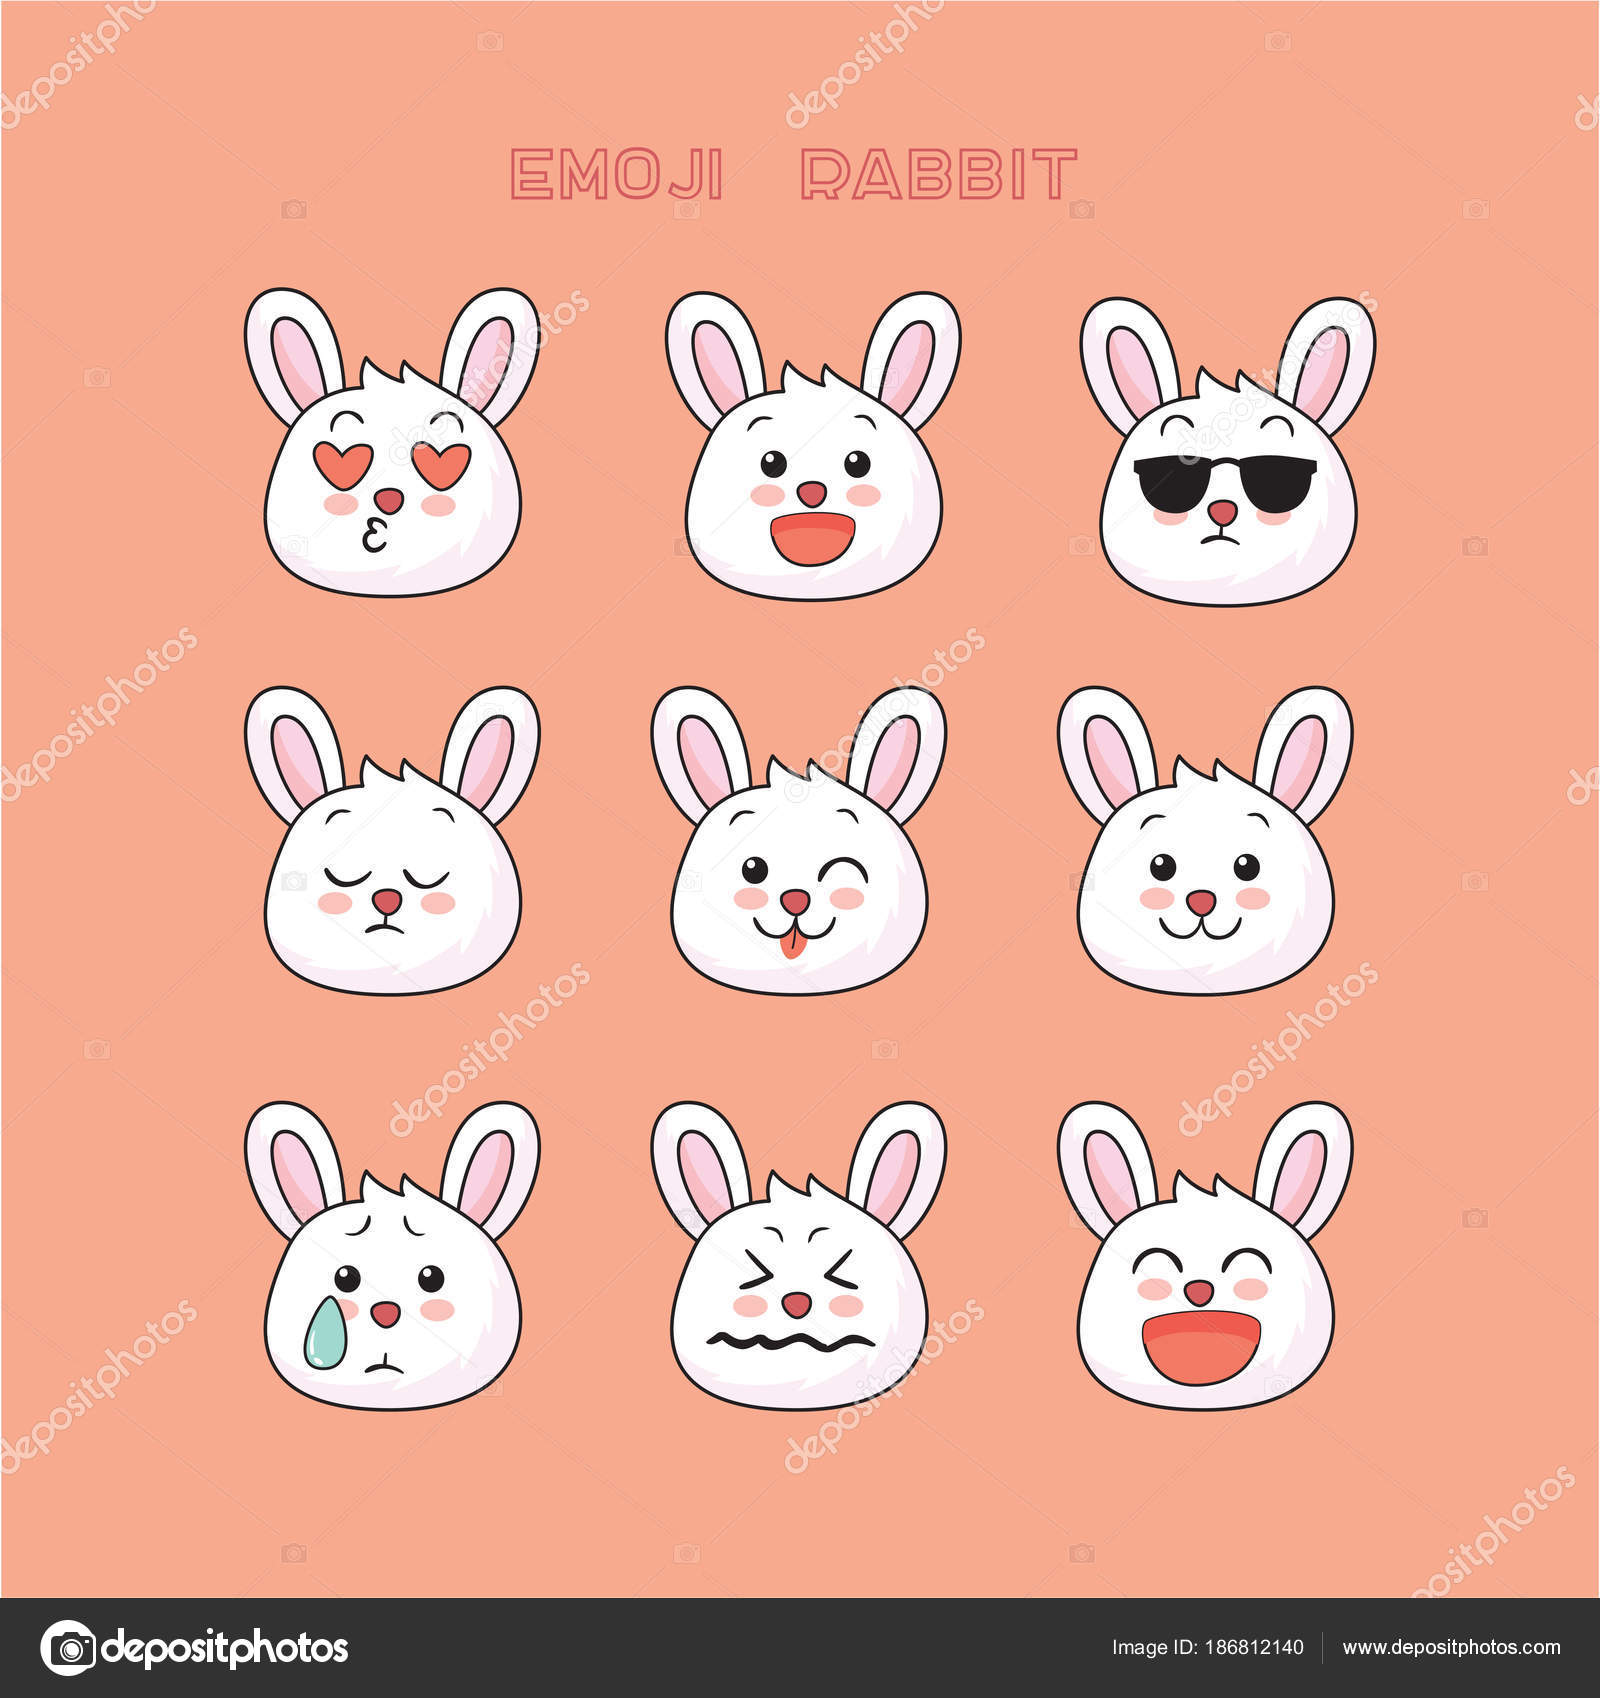 cute rabbit emoji bunny smile icons set art design color stock